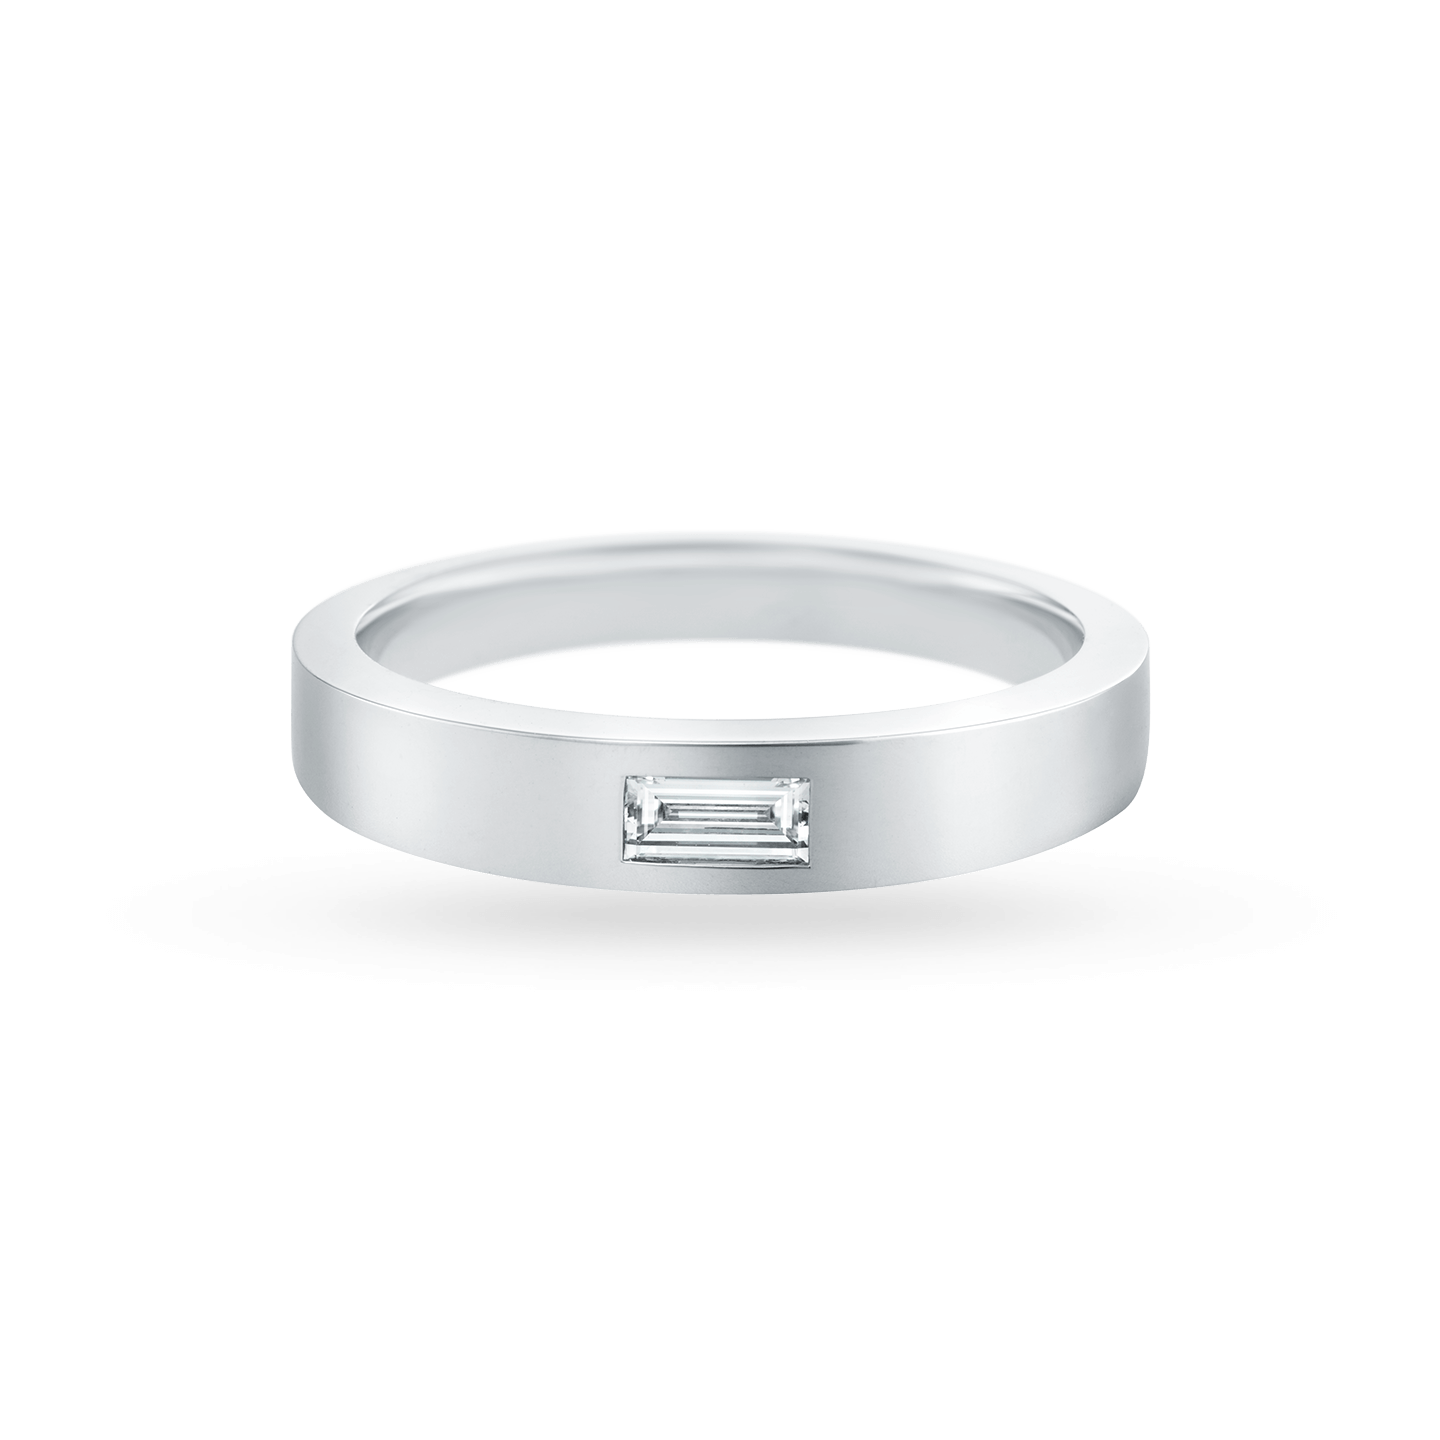 Baguette-Cut Single Diamond Wedding Band, Product Image 2